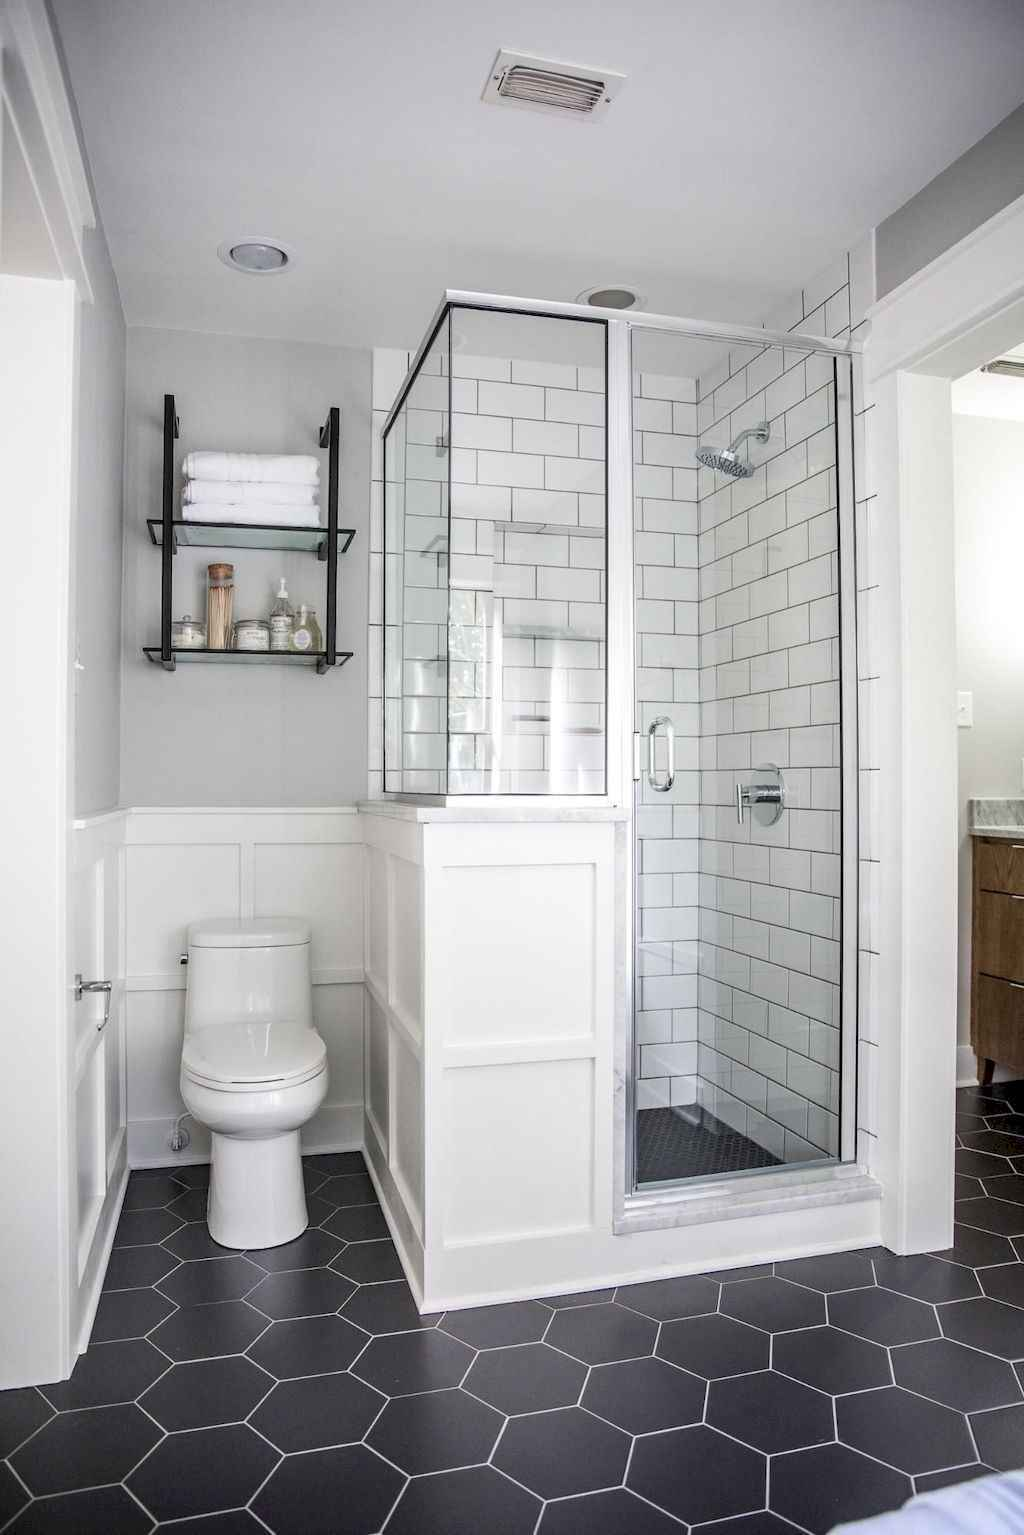 111 awesome small bathroom remodel ideas on a budget (54)